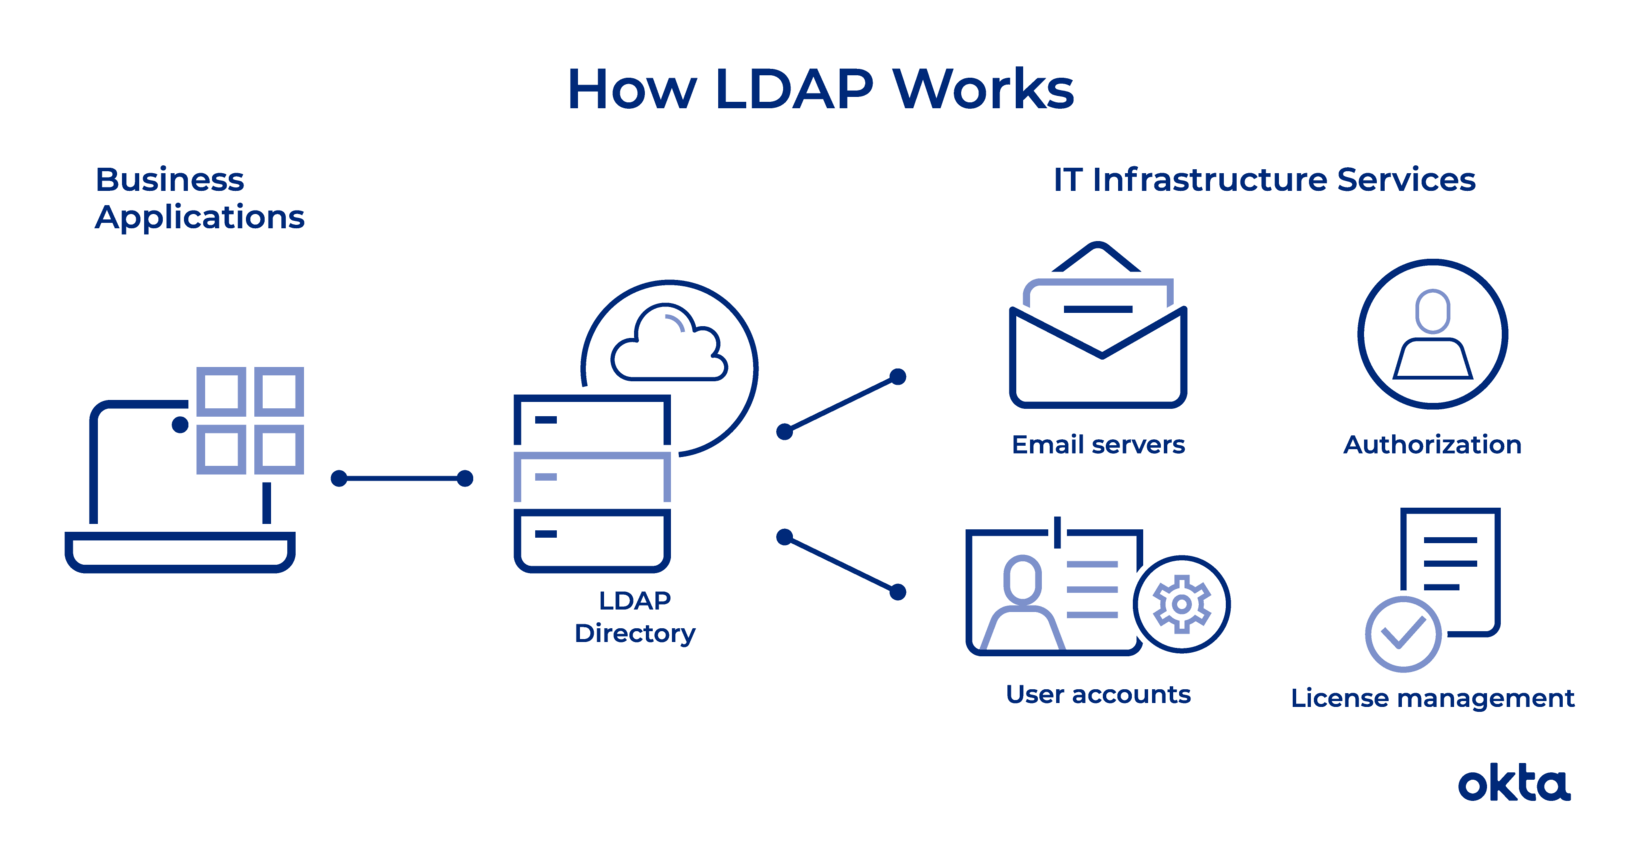 How LDAP Works